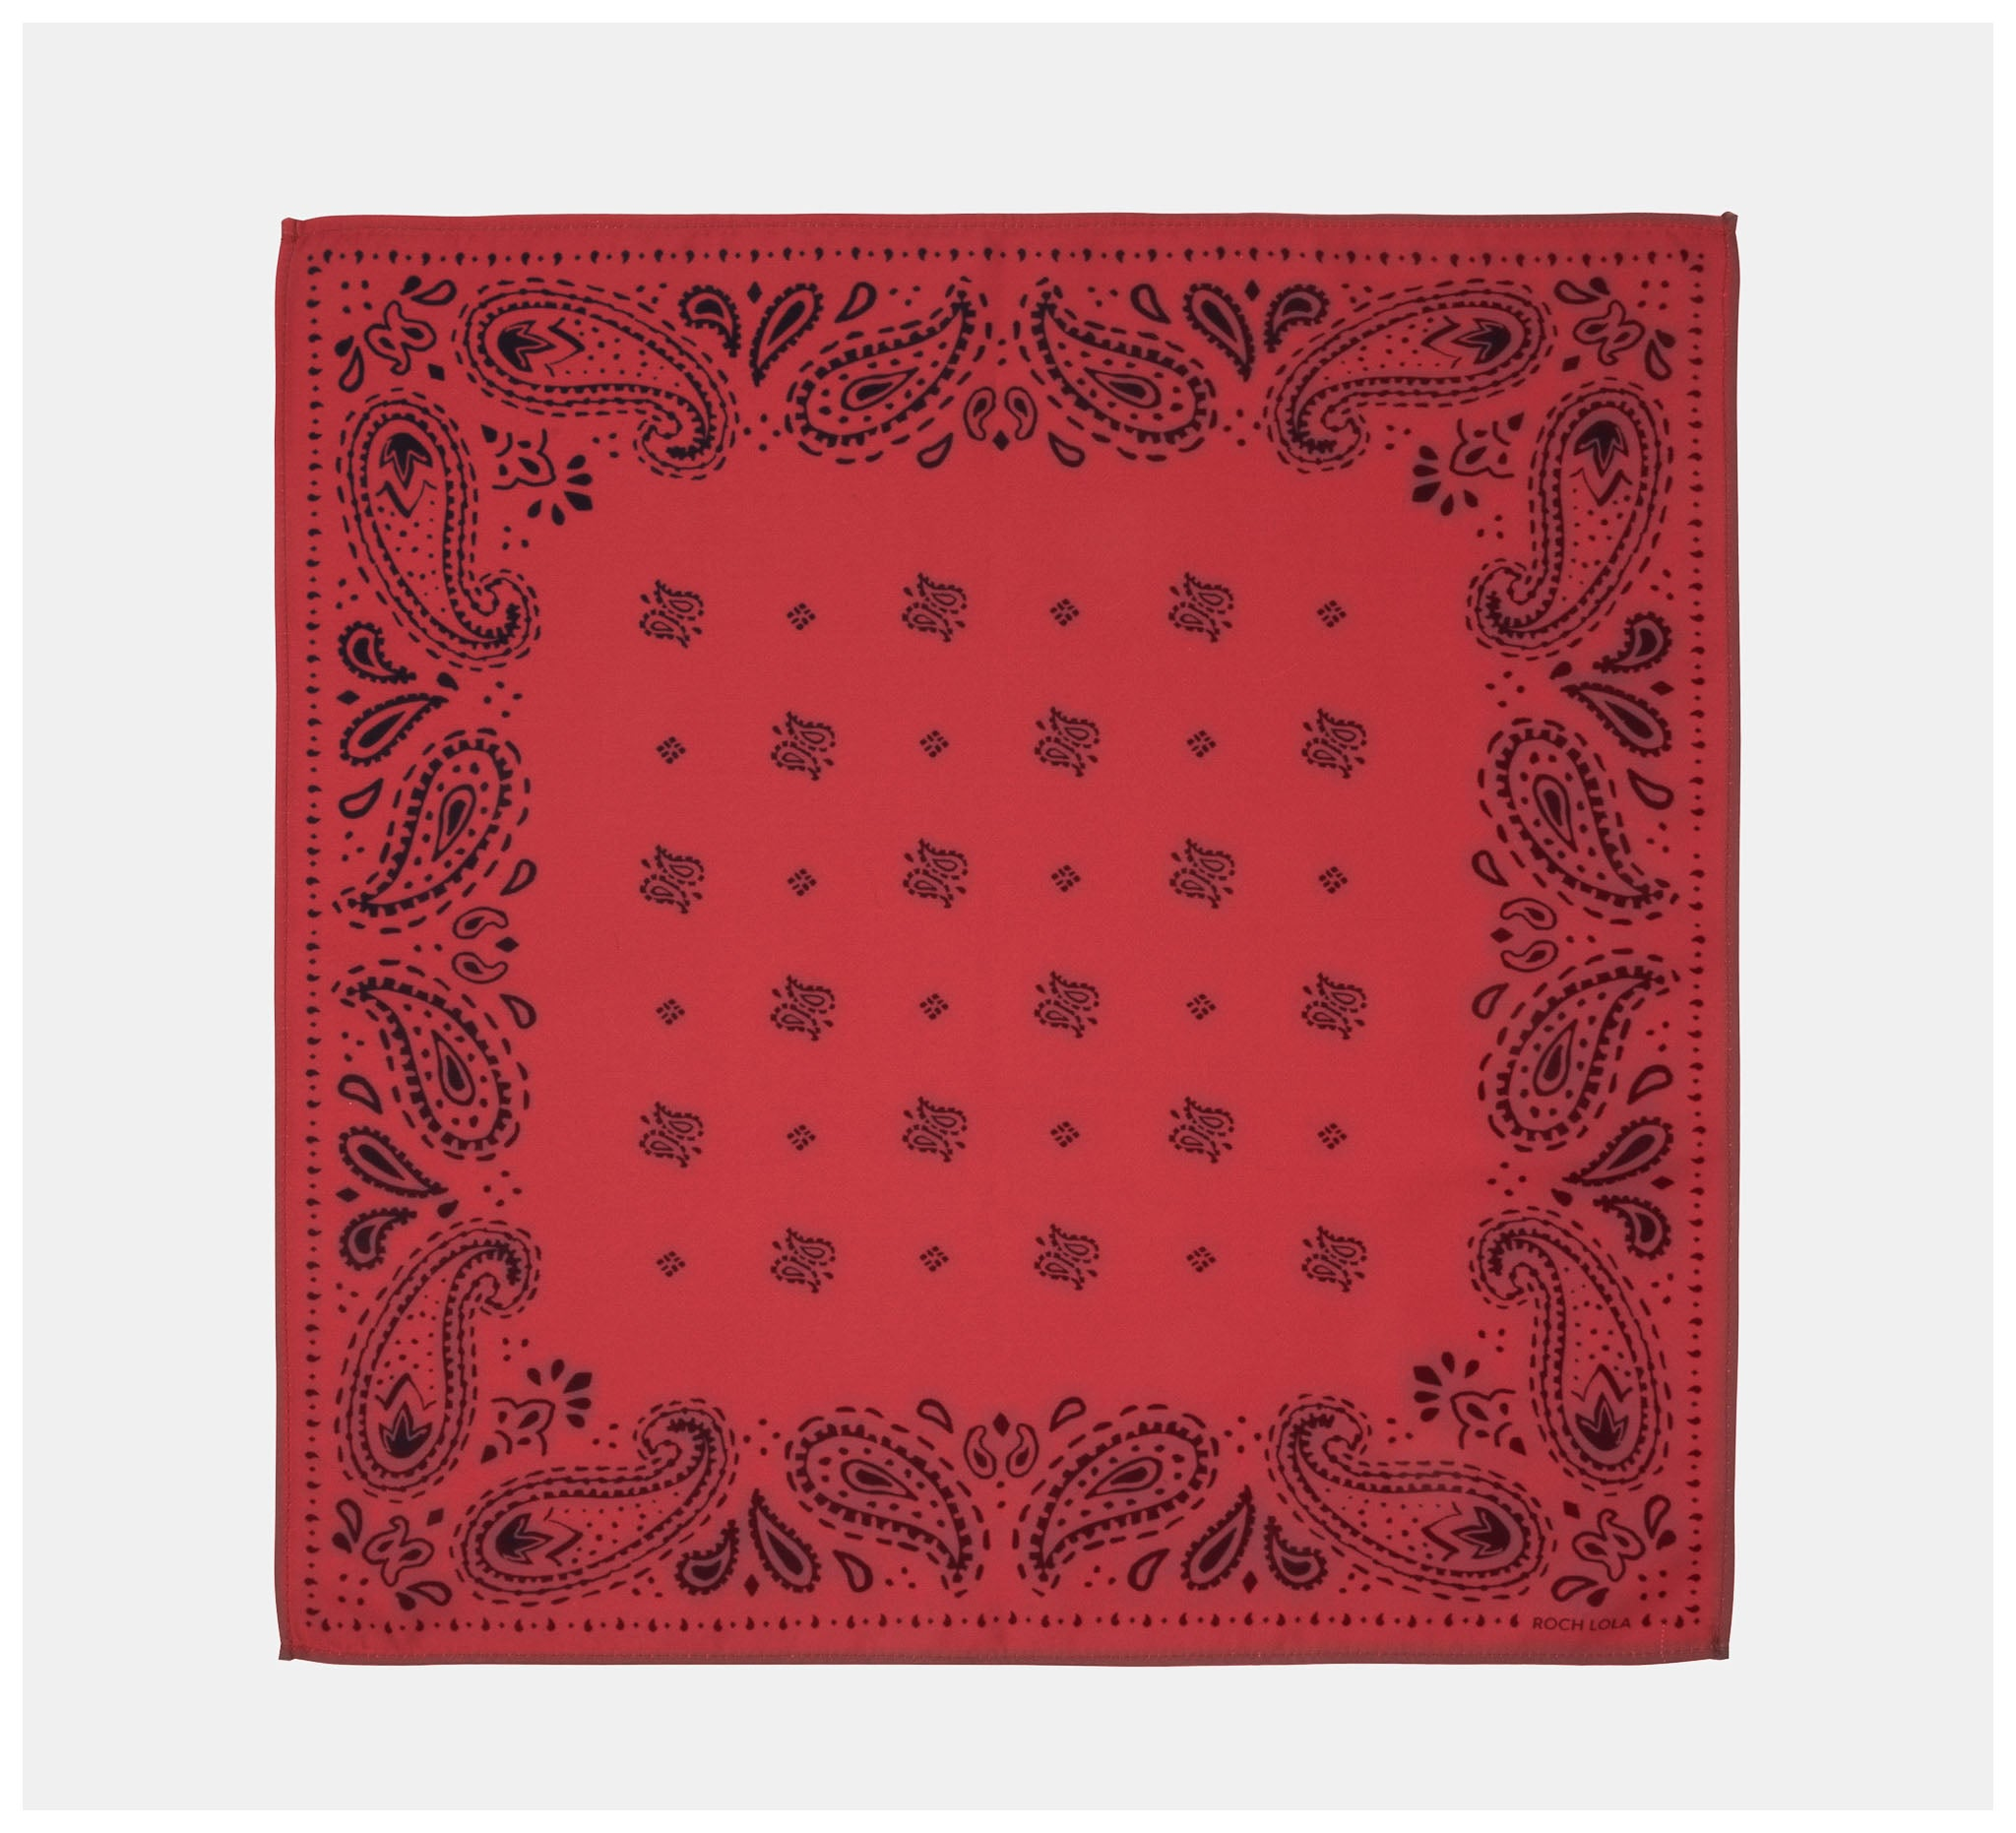 Roch Lola - The Scarf - Modern Paisley - Red/Navy